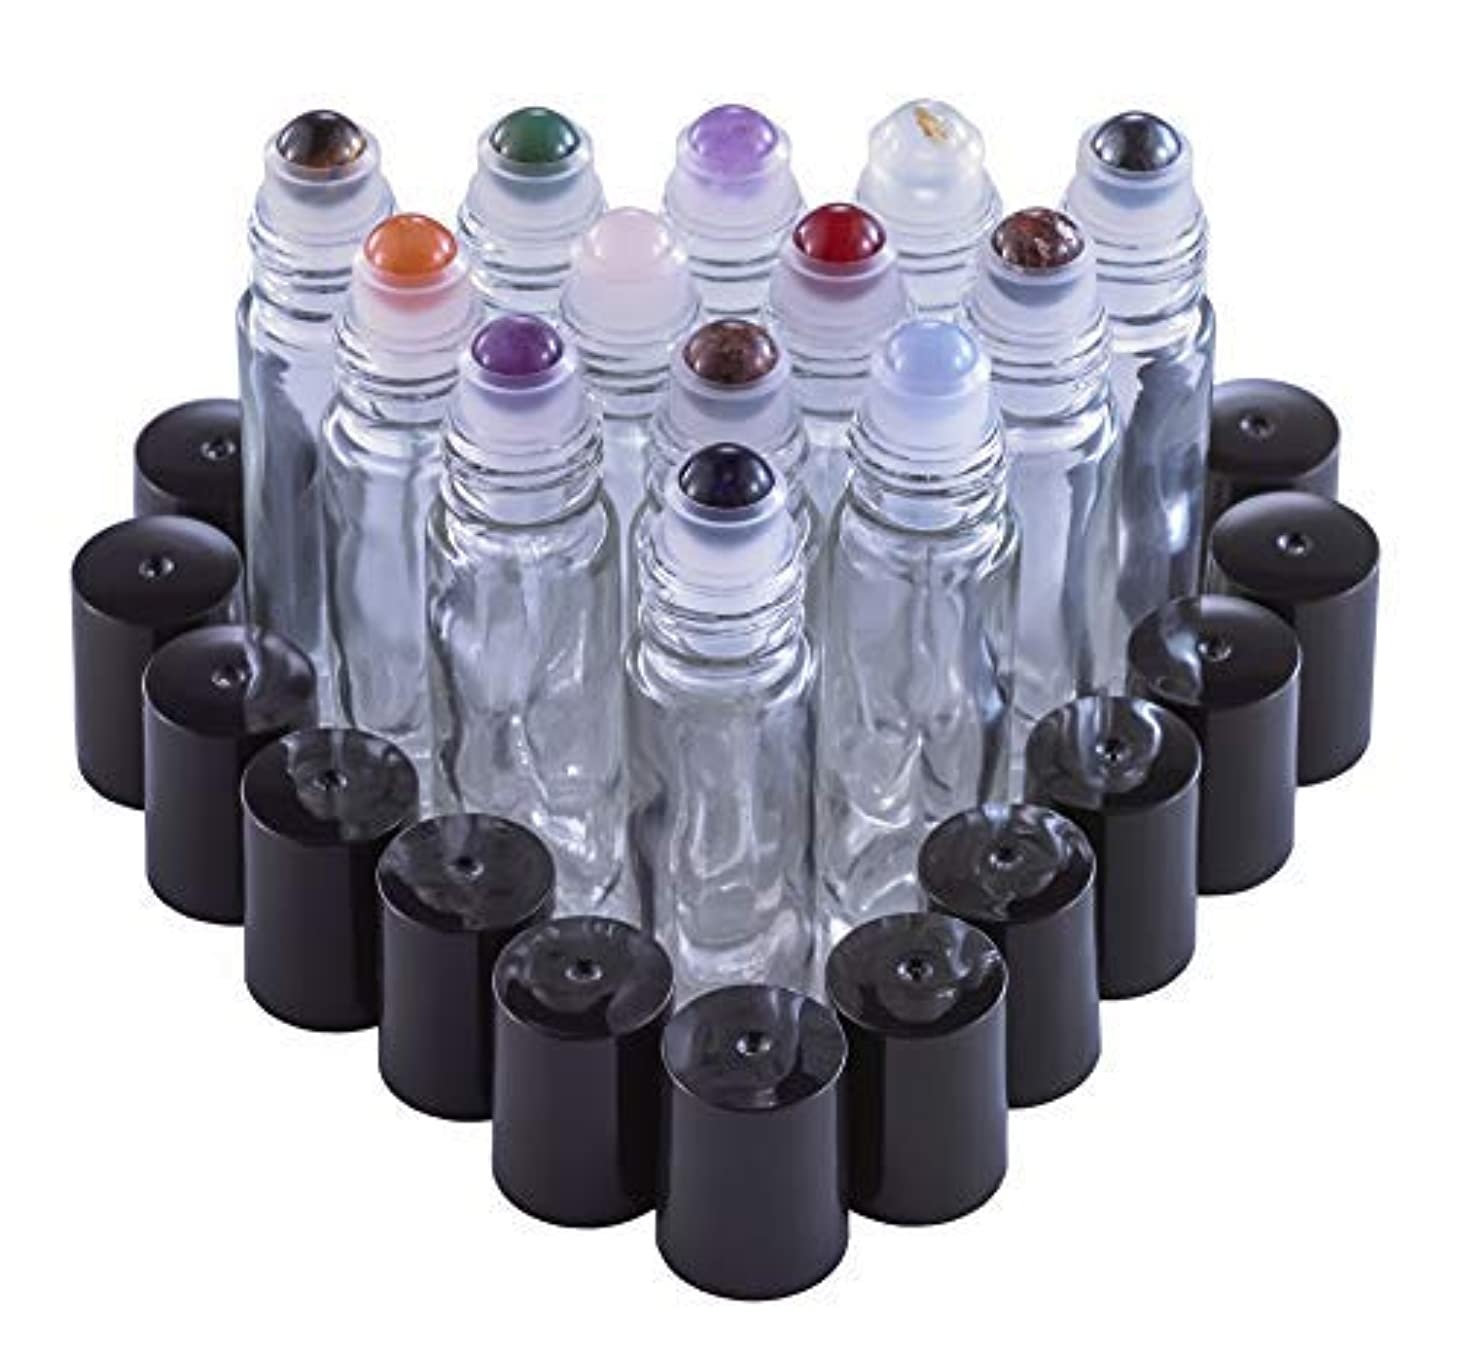 Gemstone Roller Balls For Essential Oils - 13 Beautiful Glass Roller Bottles With Precious Gemstones and Crystals...